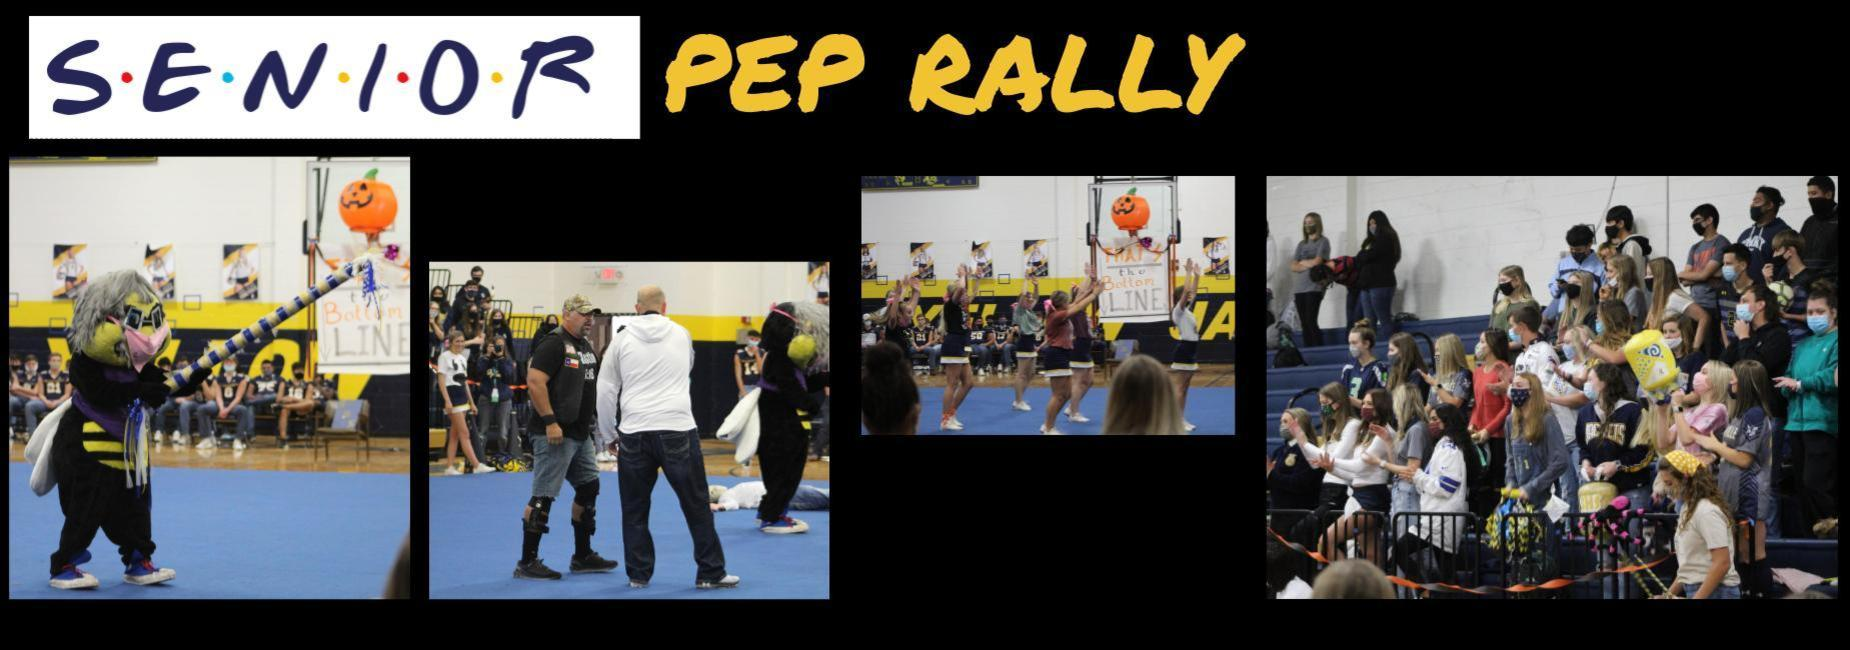 Senior pep rally